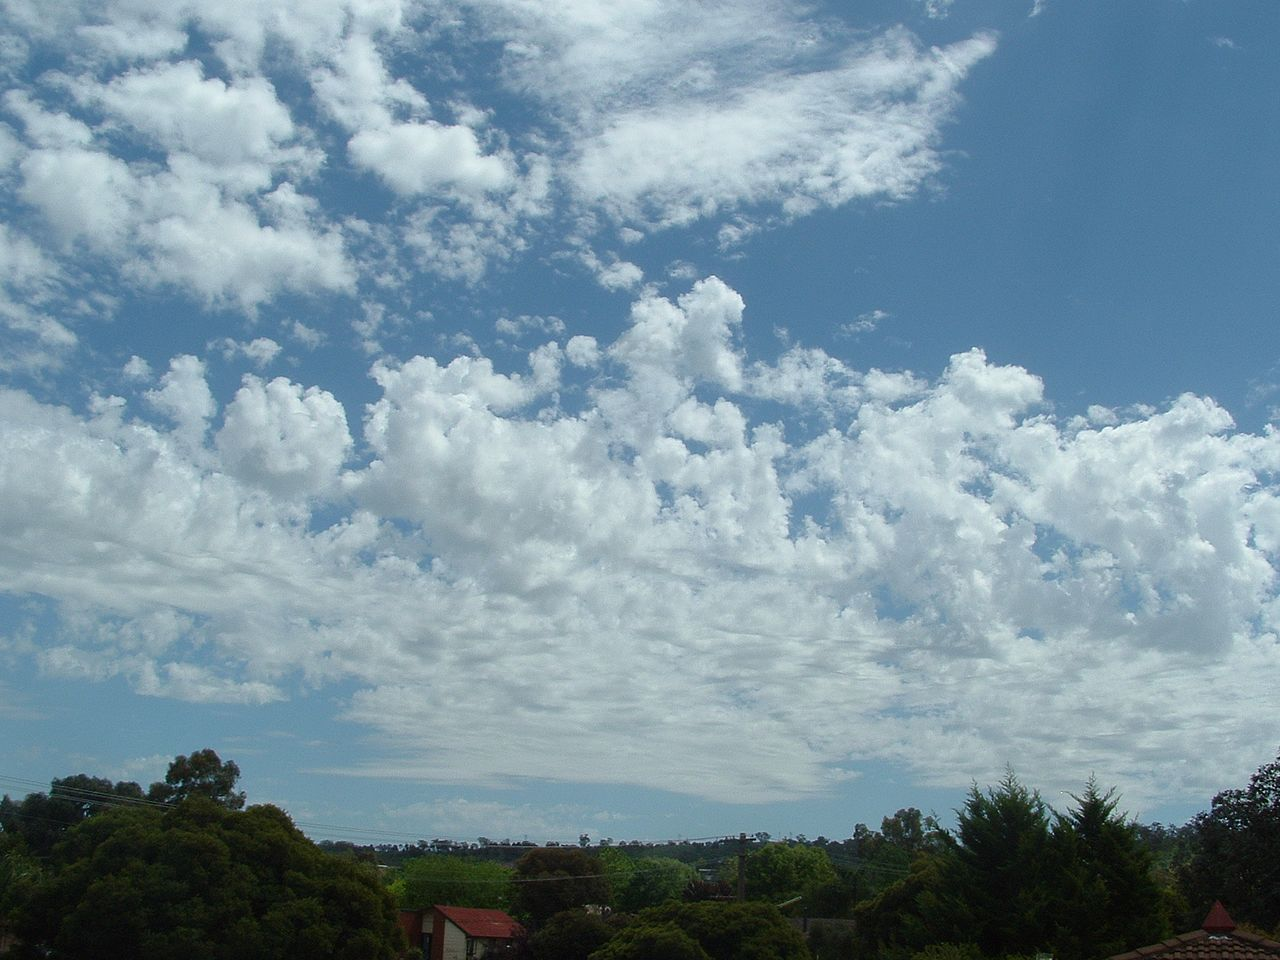 photo: Bidgee;desc: Altocumulus castellanus cloud type.;link: https://commons.wikimedia.org/wiki/File:Altocumulus-Castellanus.jpg;licence: cc;